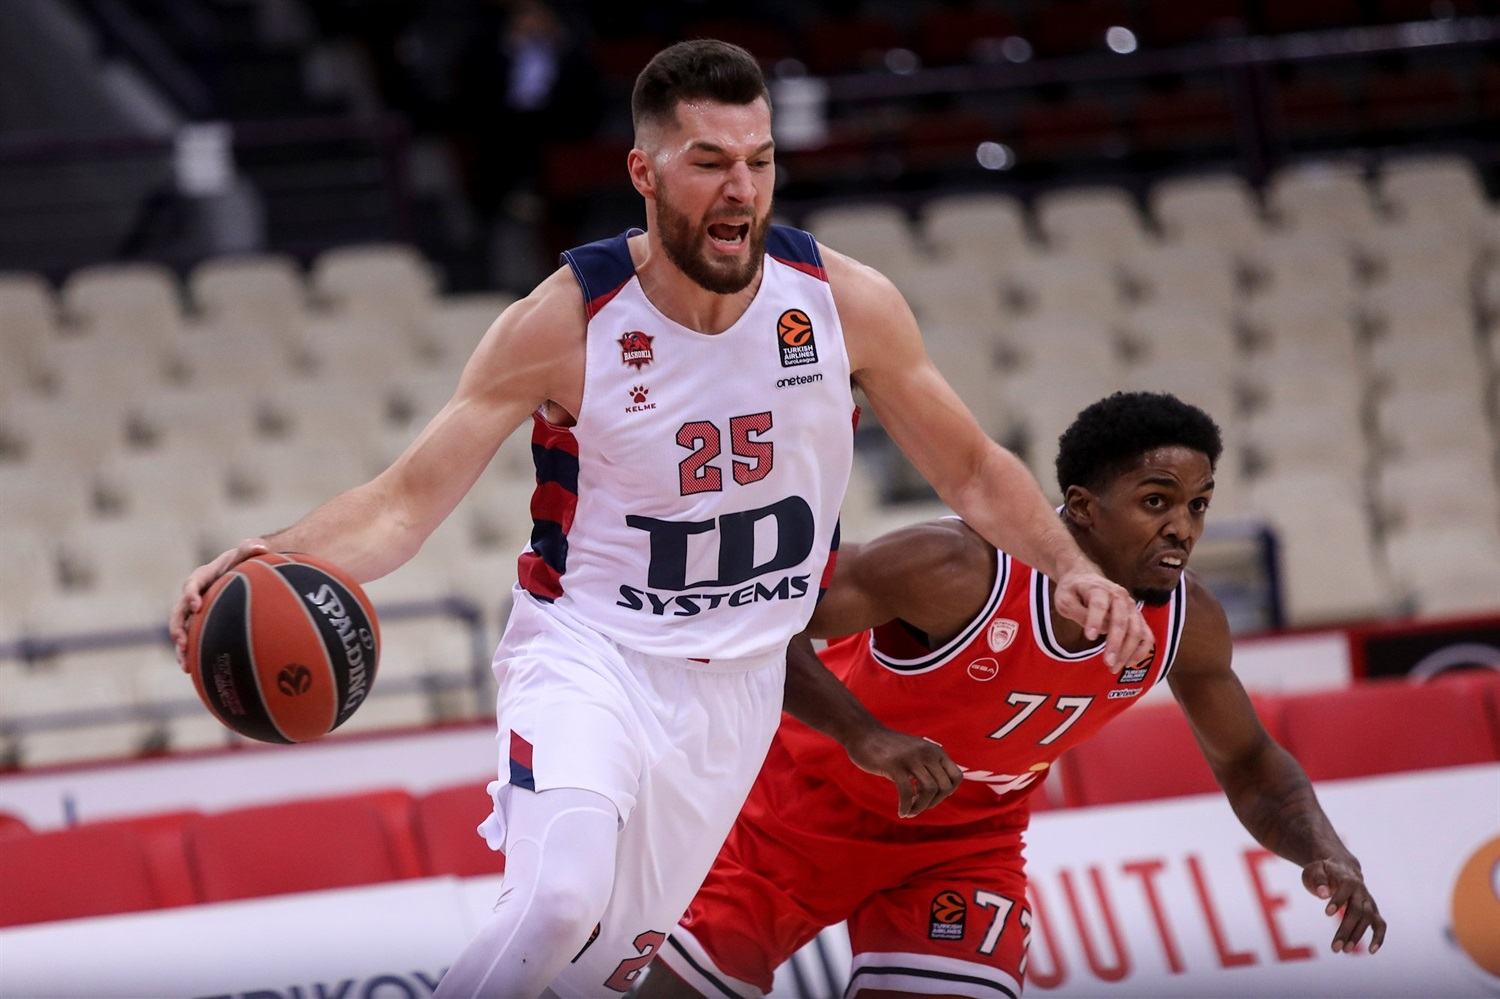 Alec Peters - TD Systems Baskonia Vitoria-Gasteiz - EB20